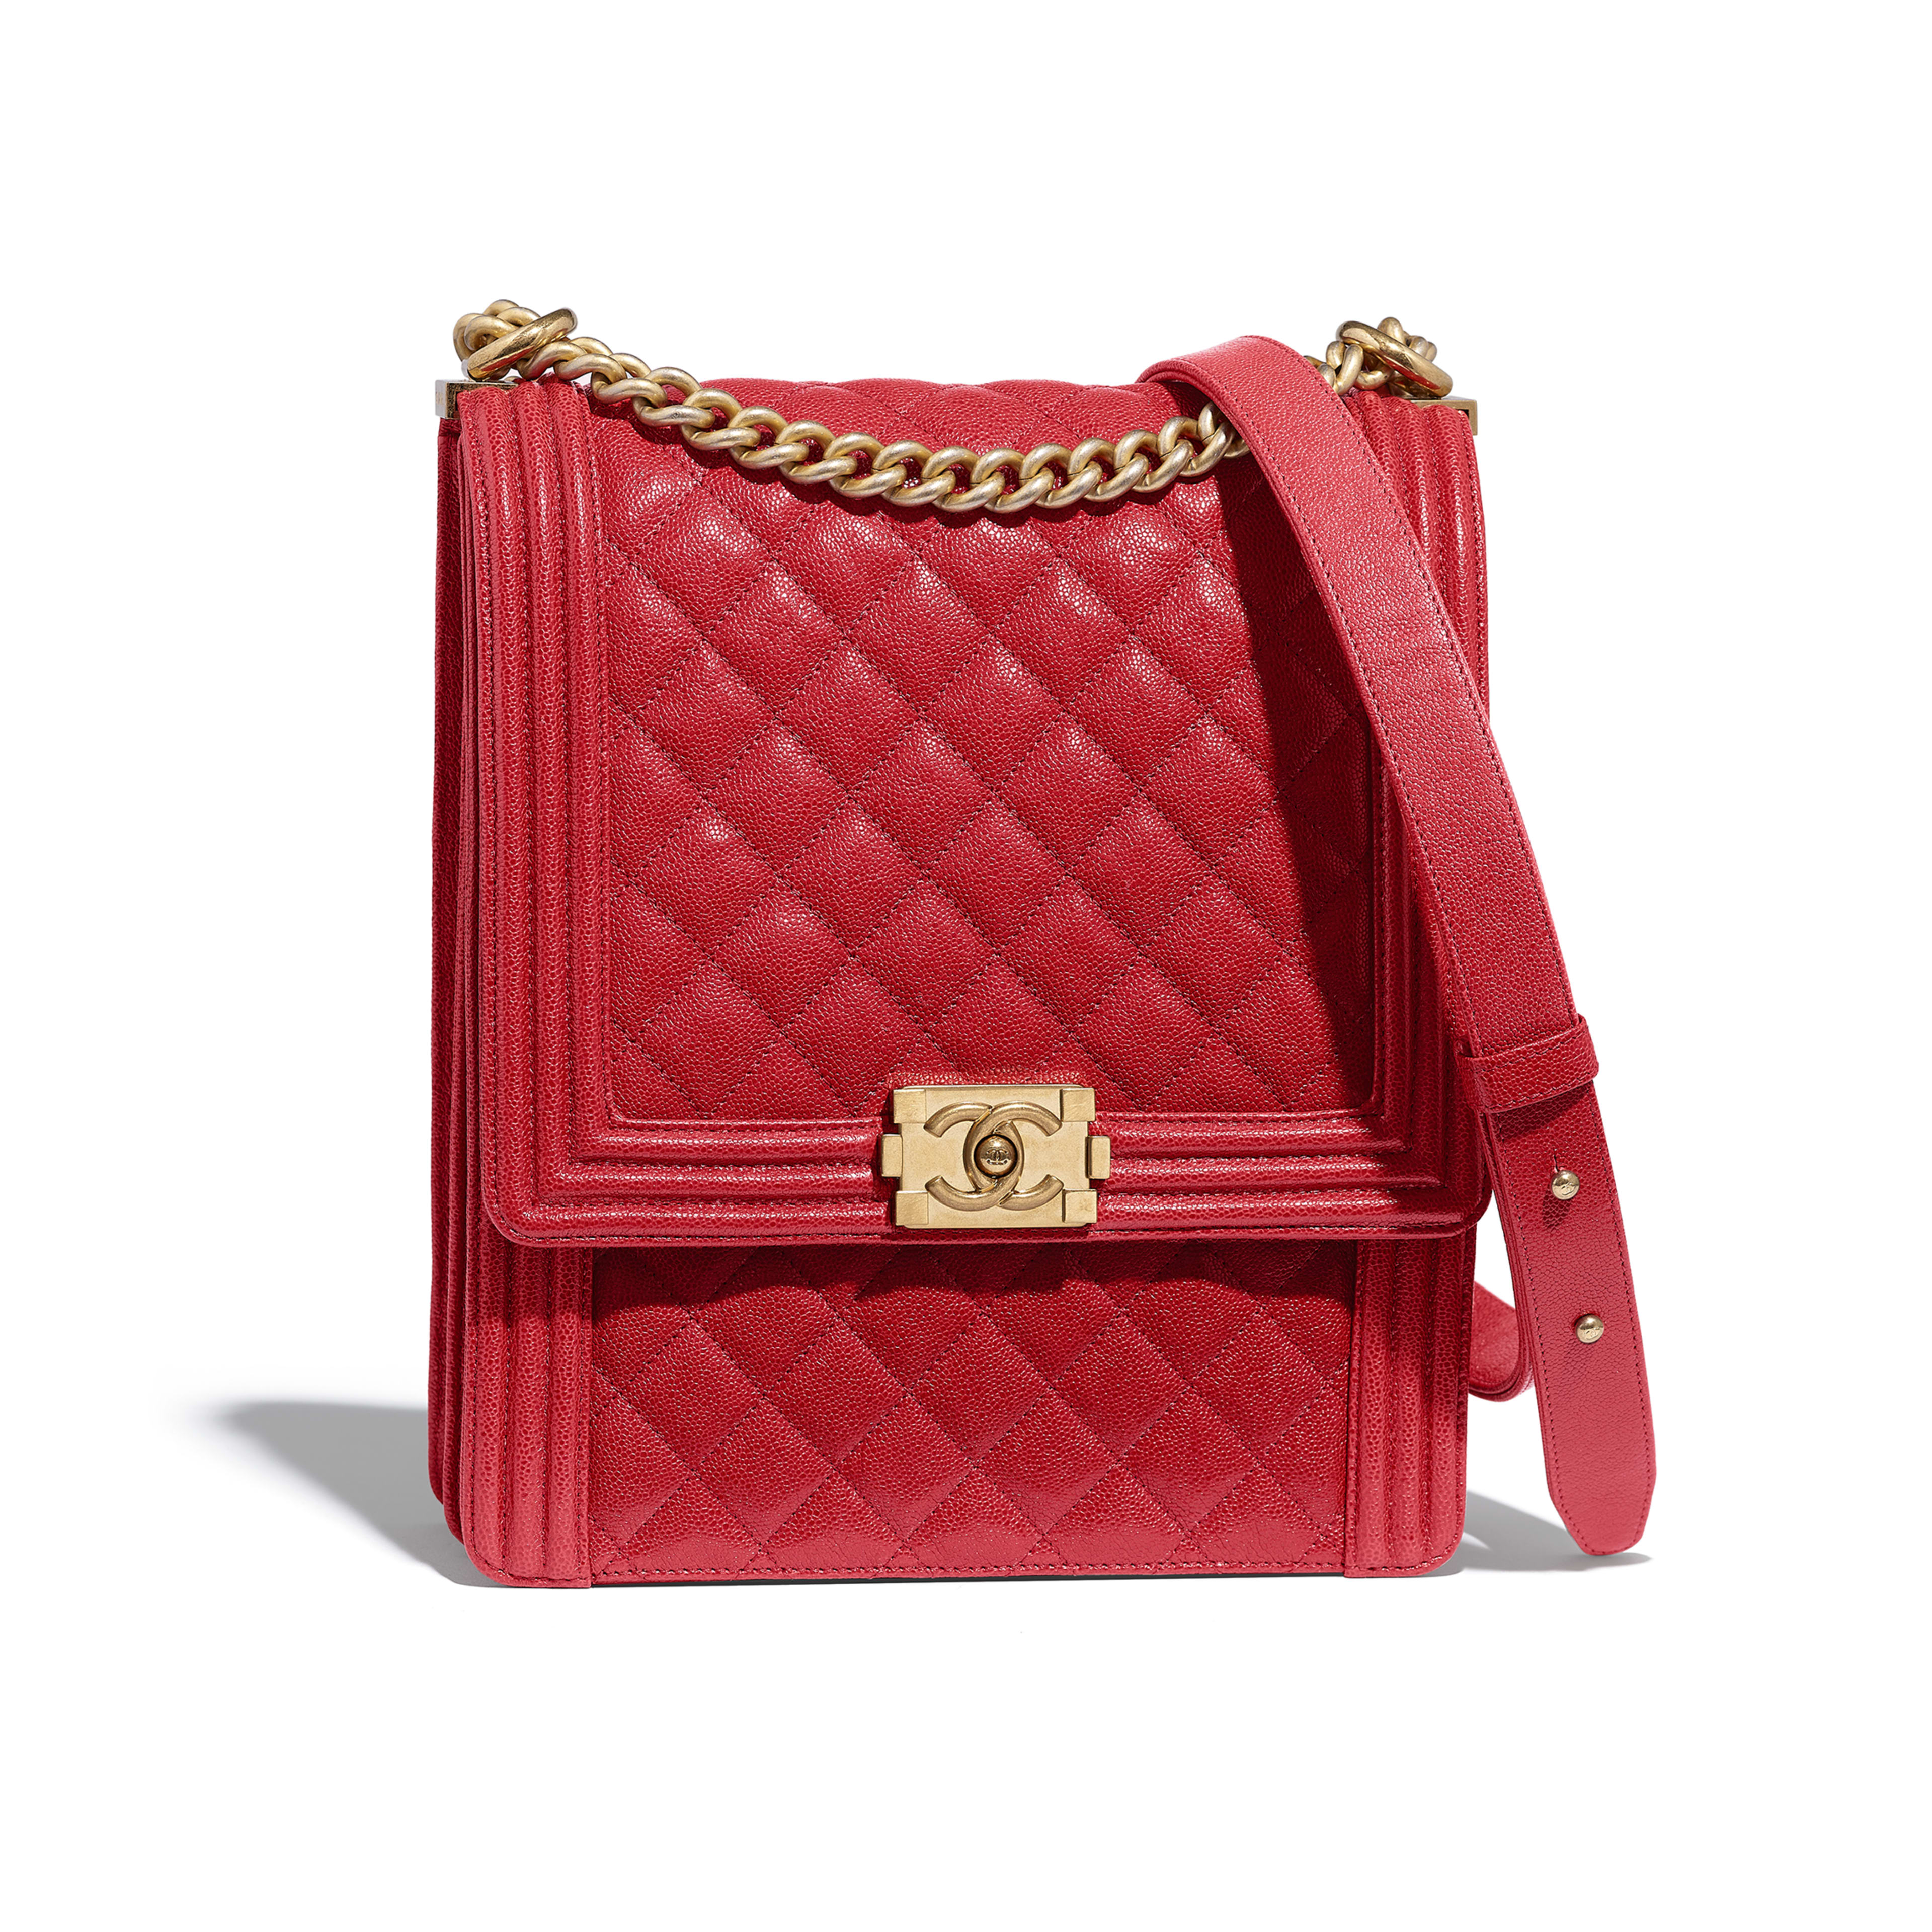 0d20fbd794d61 Large BOY CHANEL Handbag - Red - Grained Calfskin   Gold-Tone Metal -  Default ...